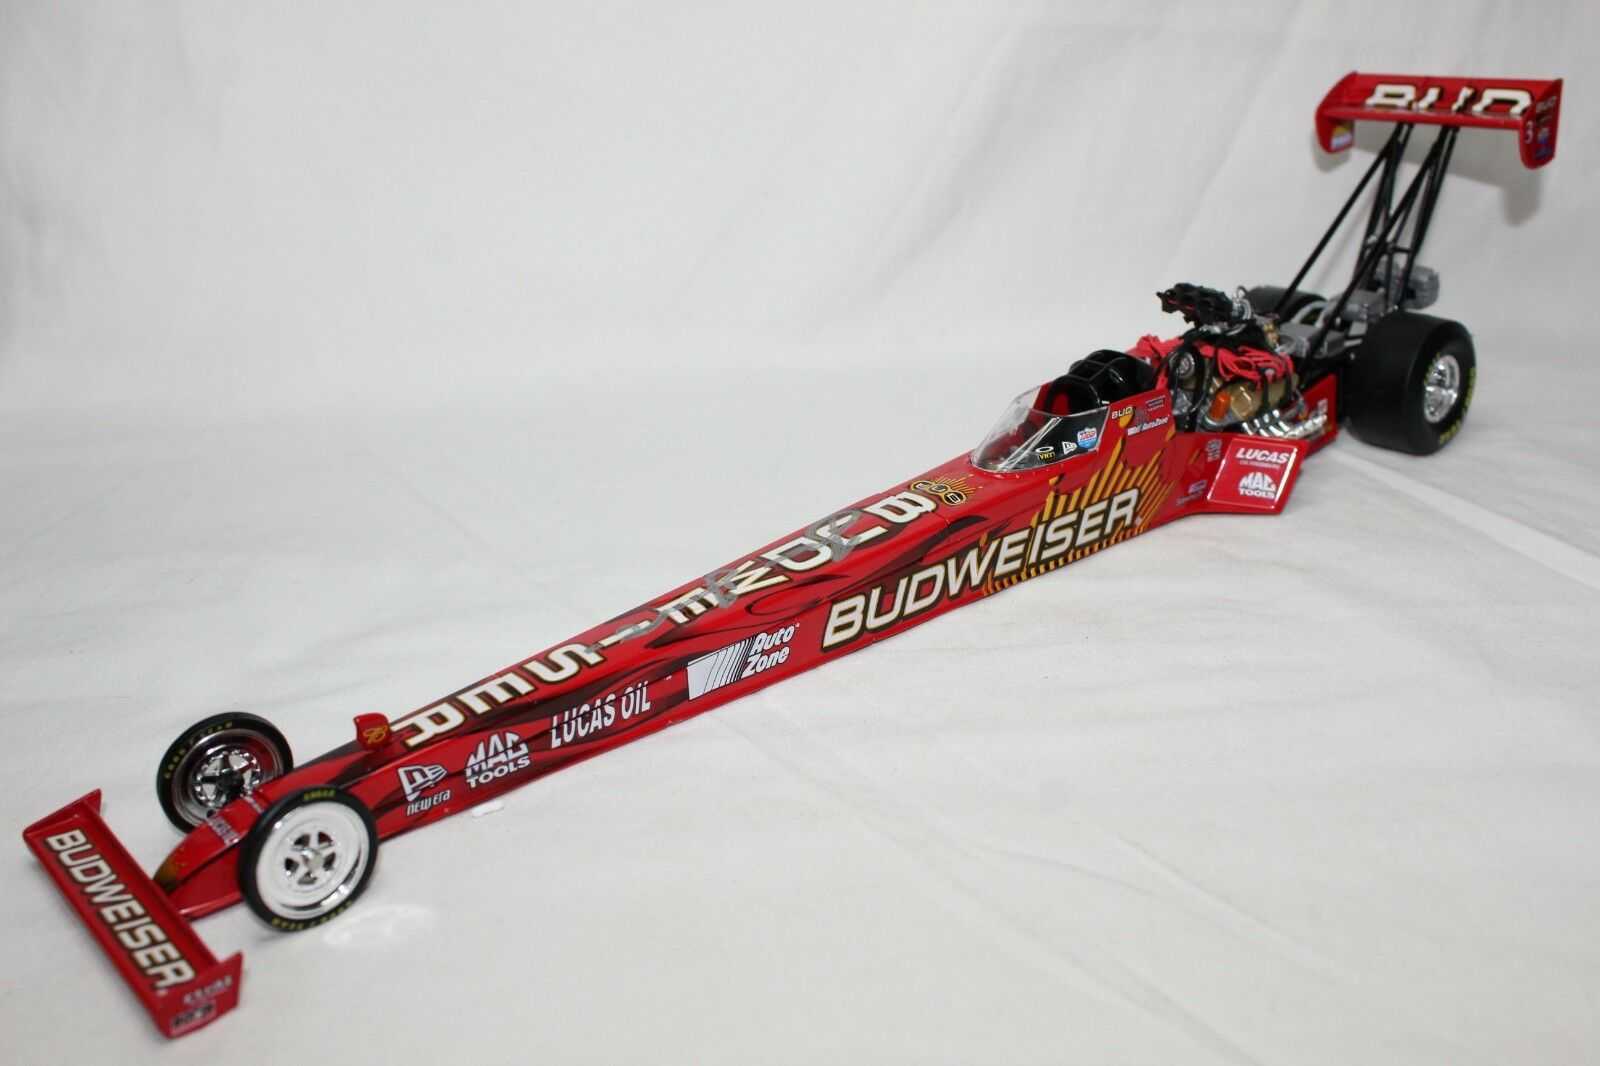 Action 1 24 Scale NHRA BRANDON BERNSTEIN BUDWEISER 2005 DRAGSTER - AUTOGRAPHED